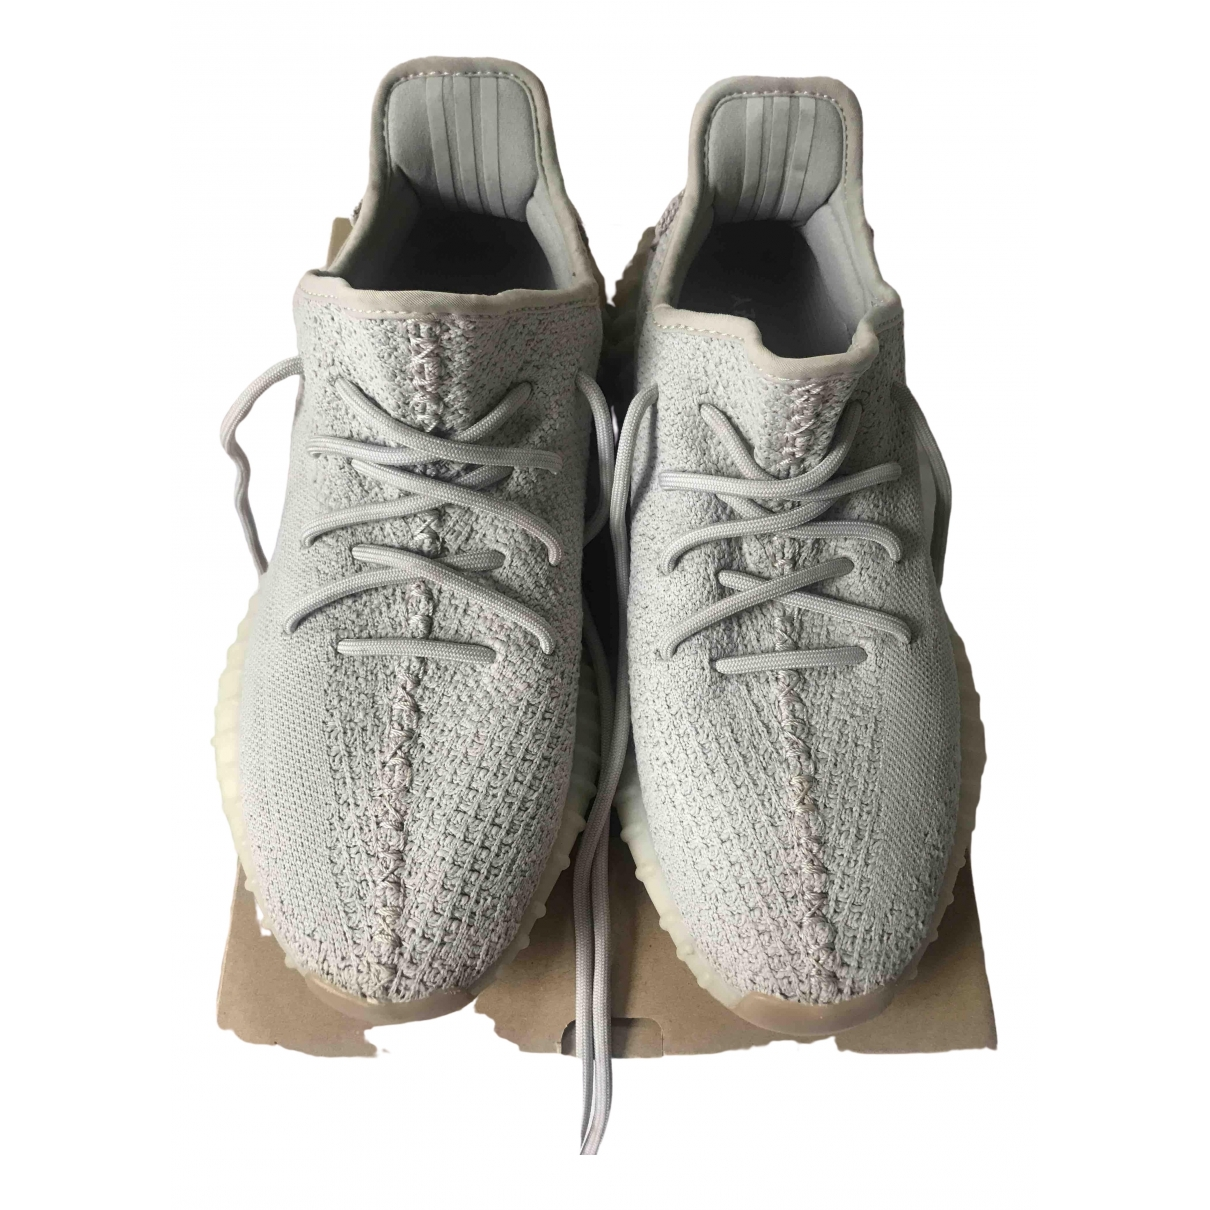 Yeezy X Adidas - Baskets Boost 350 V2 pour homme - gris